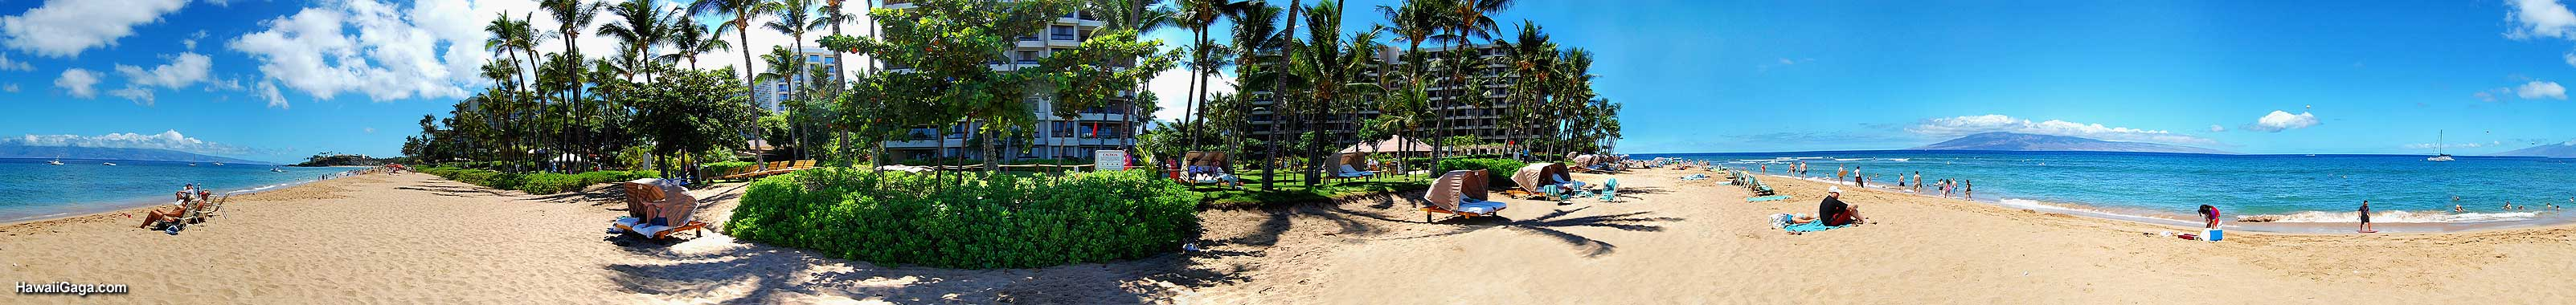 Kaanapali Beach panorama